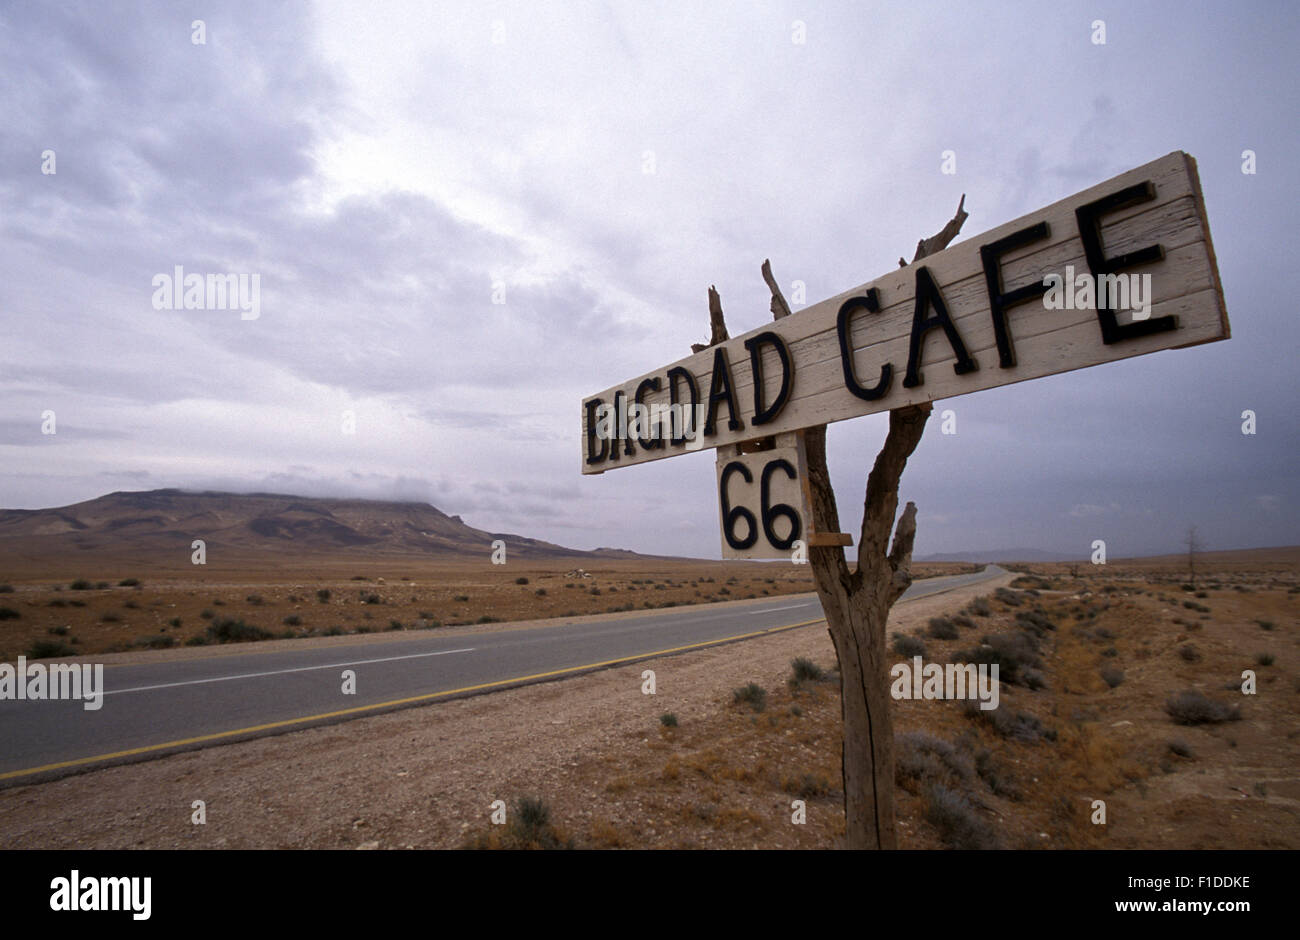 Sign of Bagdag Cafe 66 in the motorway to Irak near Palmyra - Stock Image